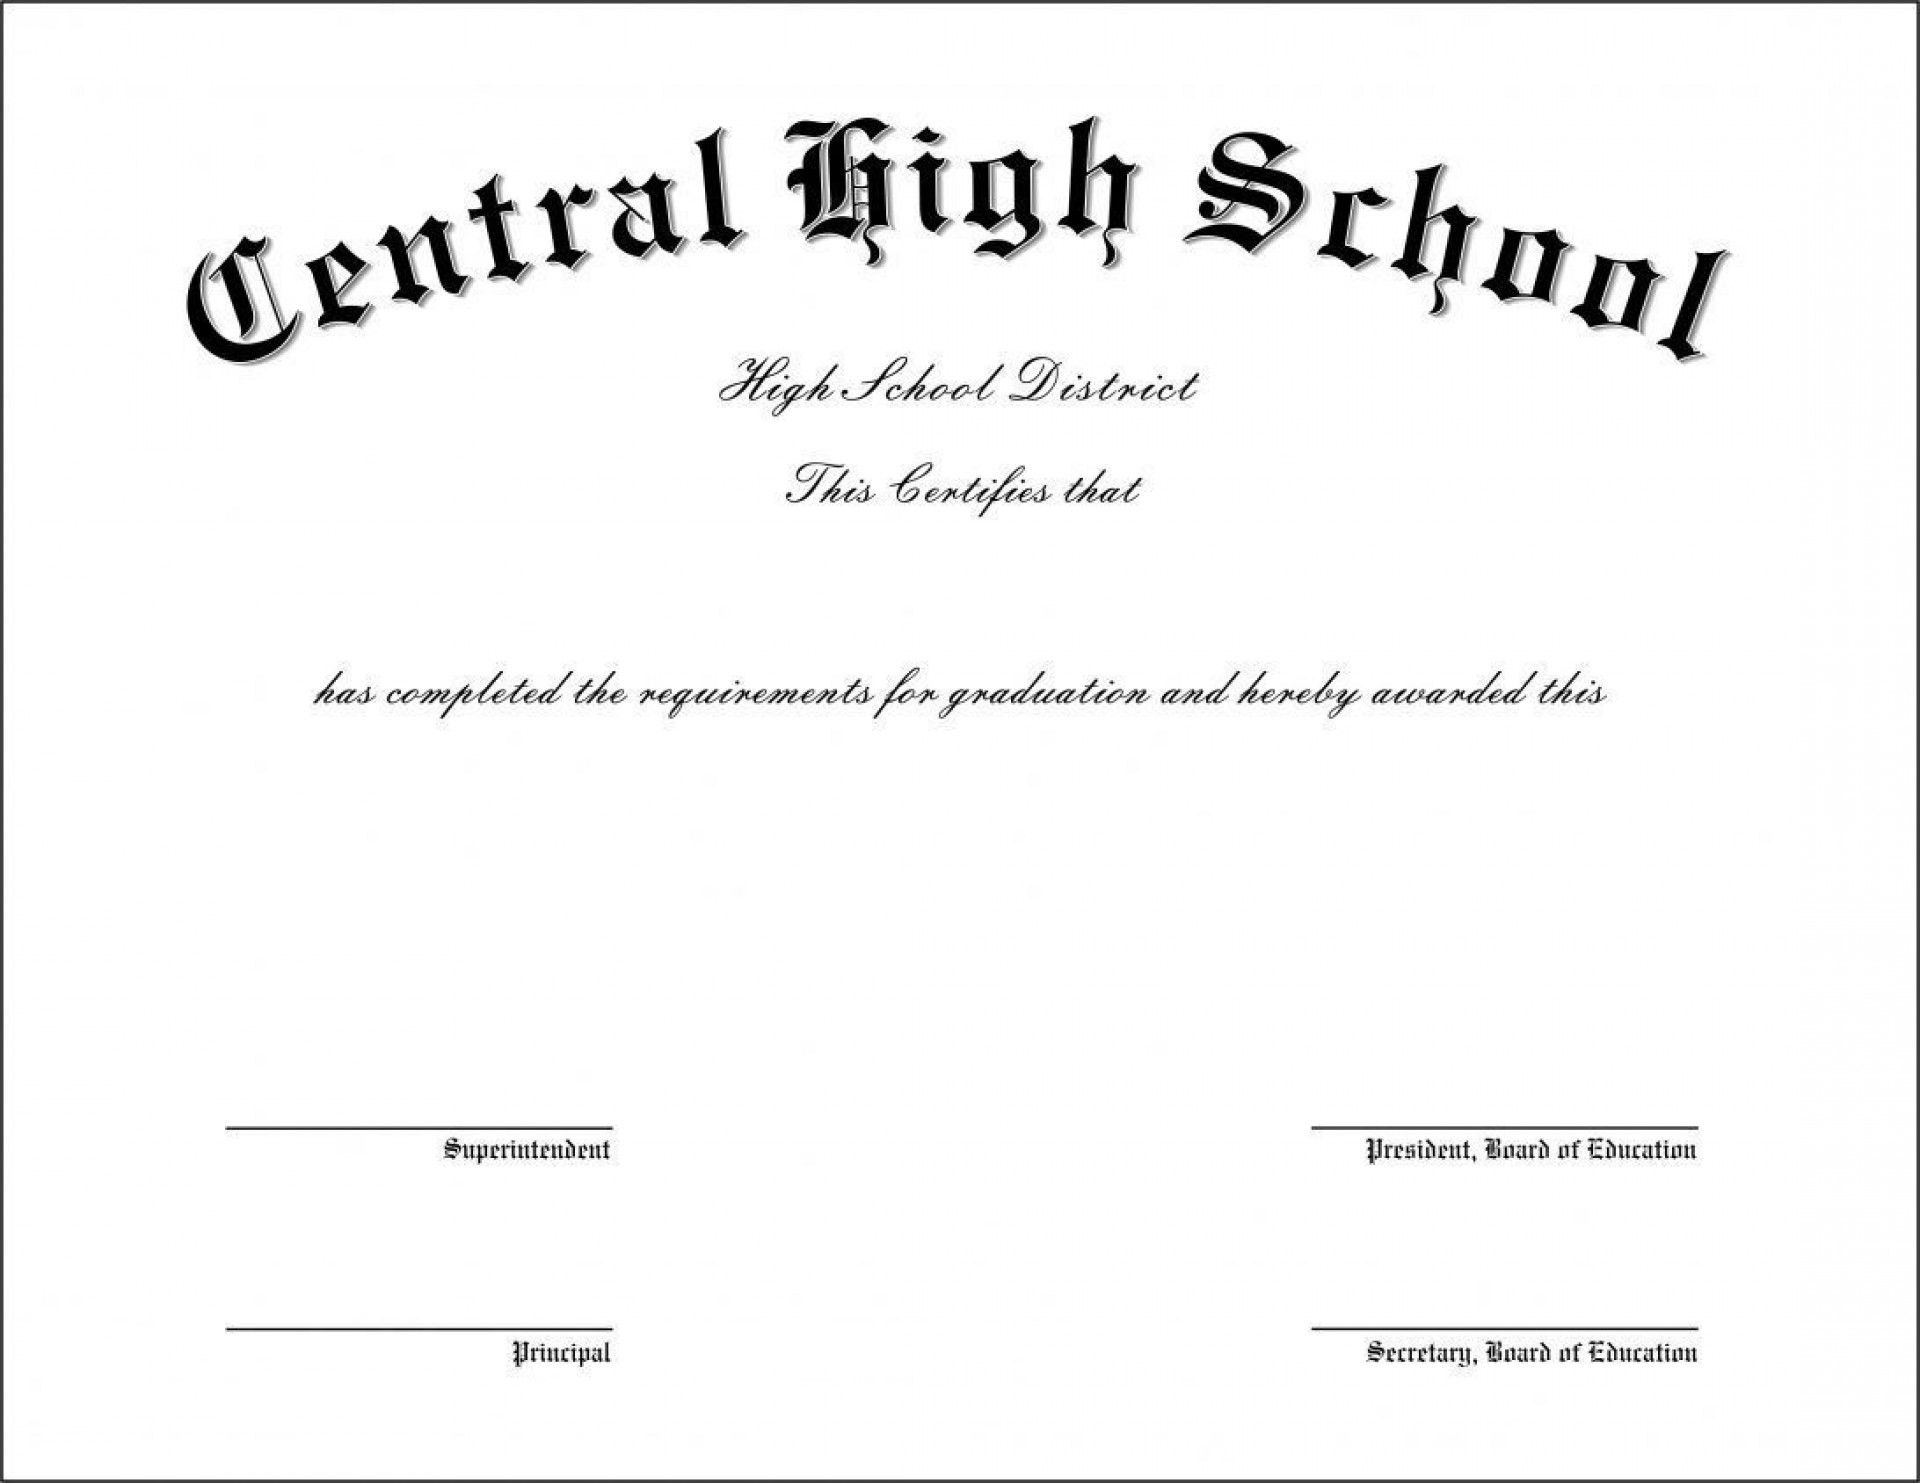 007 Awful Ged Certificate Template Download Photo  Free1920